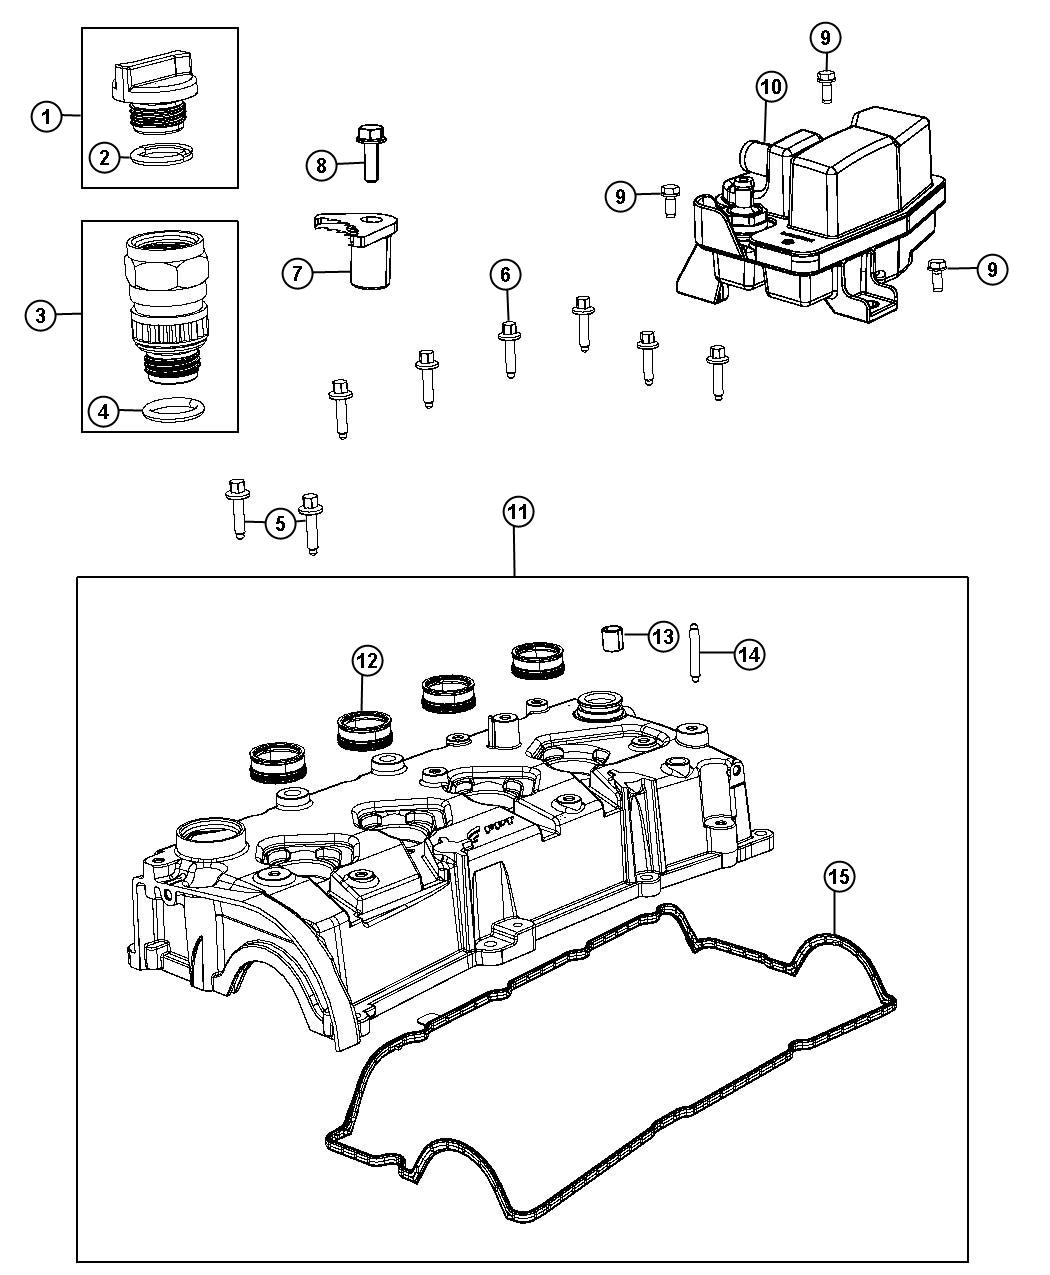 2013 Dodge Dart Separator. Engine oil. Illustration, refer